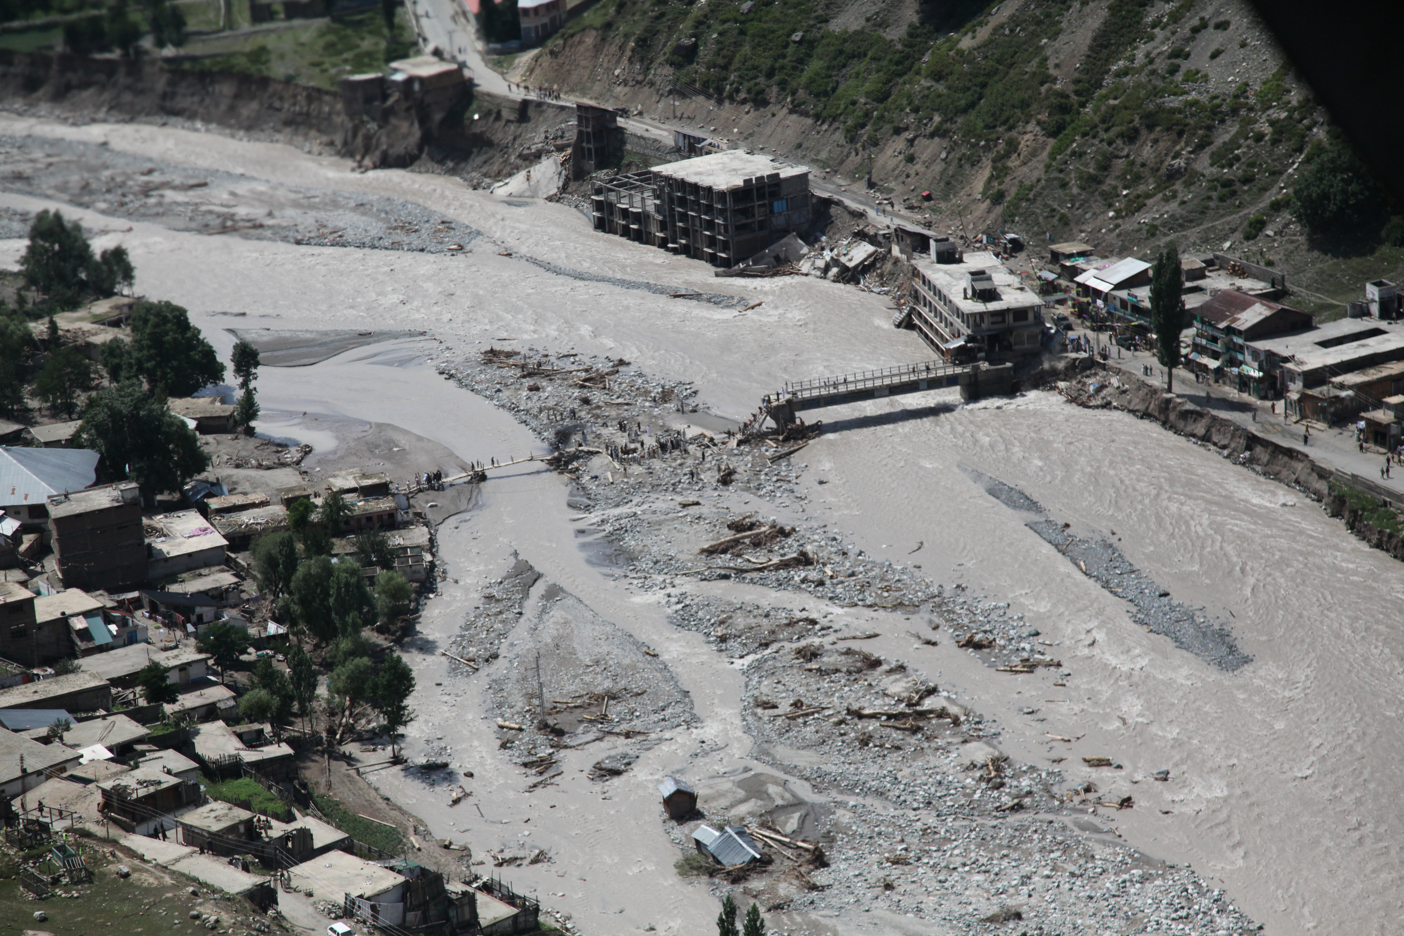 http://upload.wikimedia.org/wikipedia/commons/f/f9/Damaged_bridge_from_flooding_in_Pakistan%2C_2010.JPG